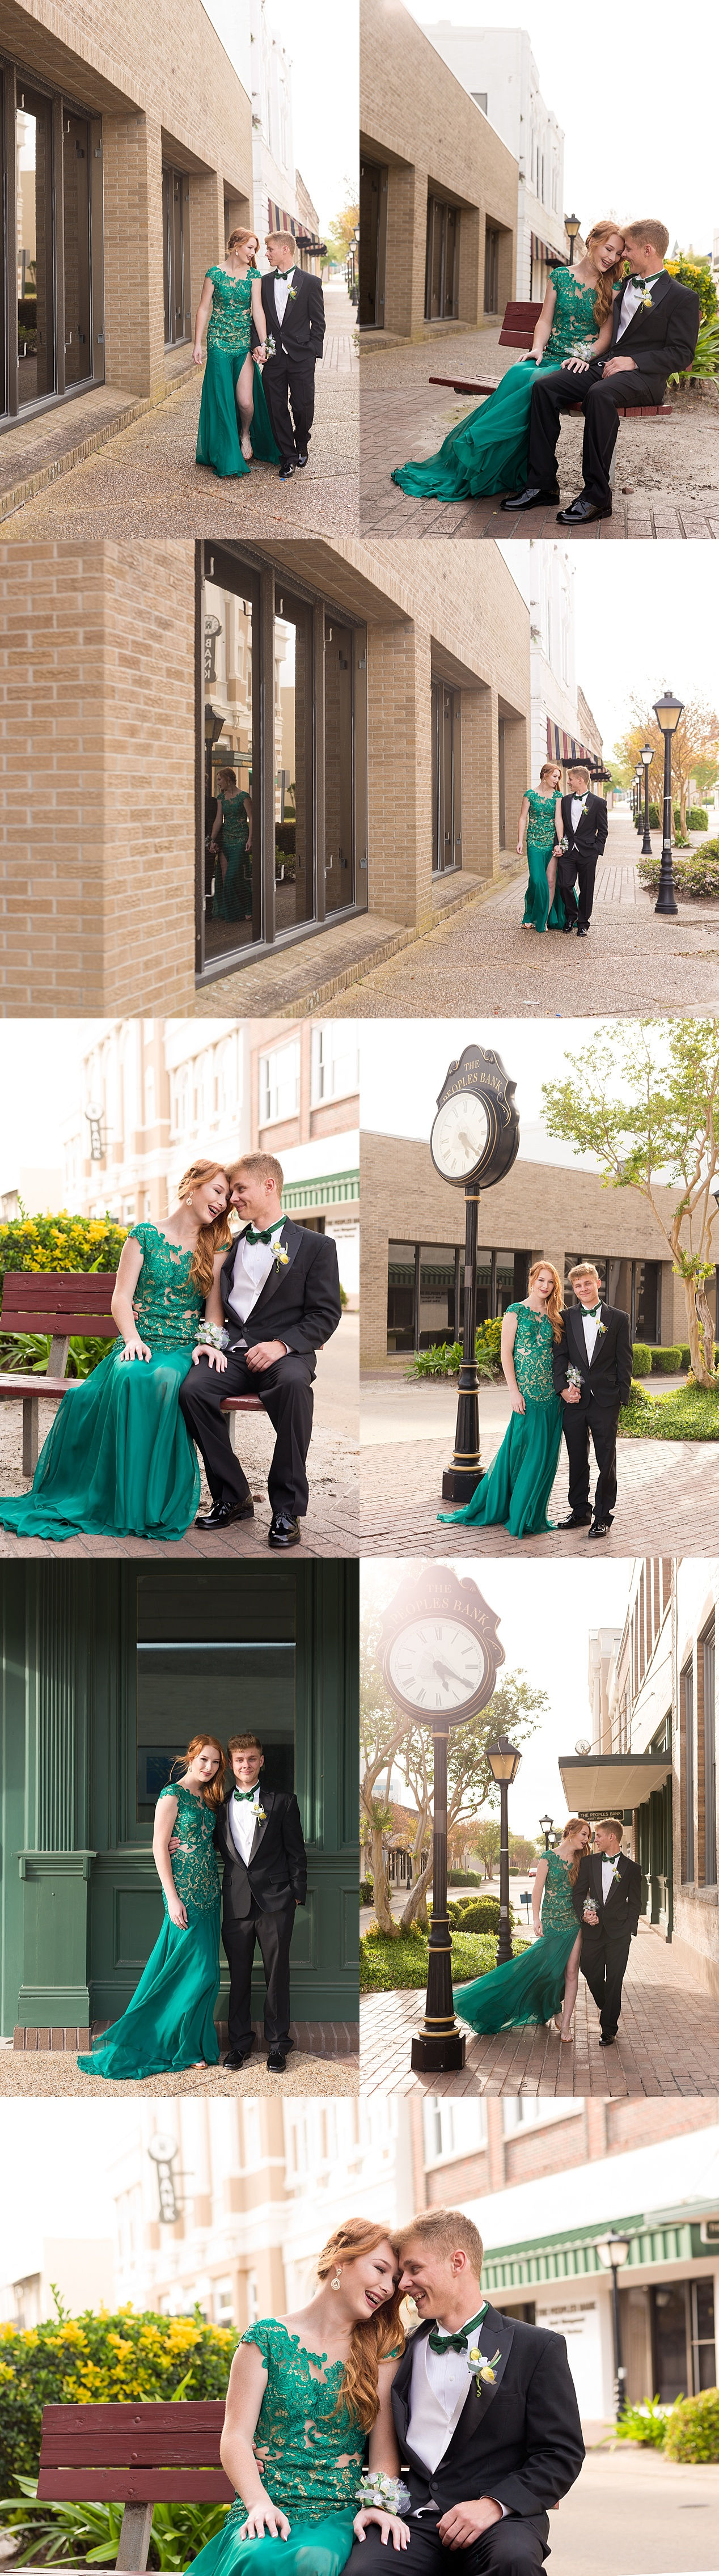 Downtown Biloxi Prom Portraits